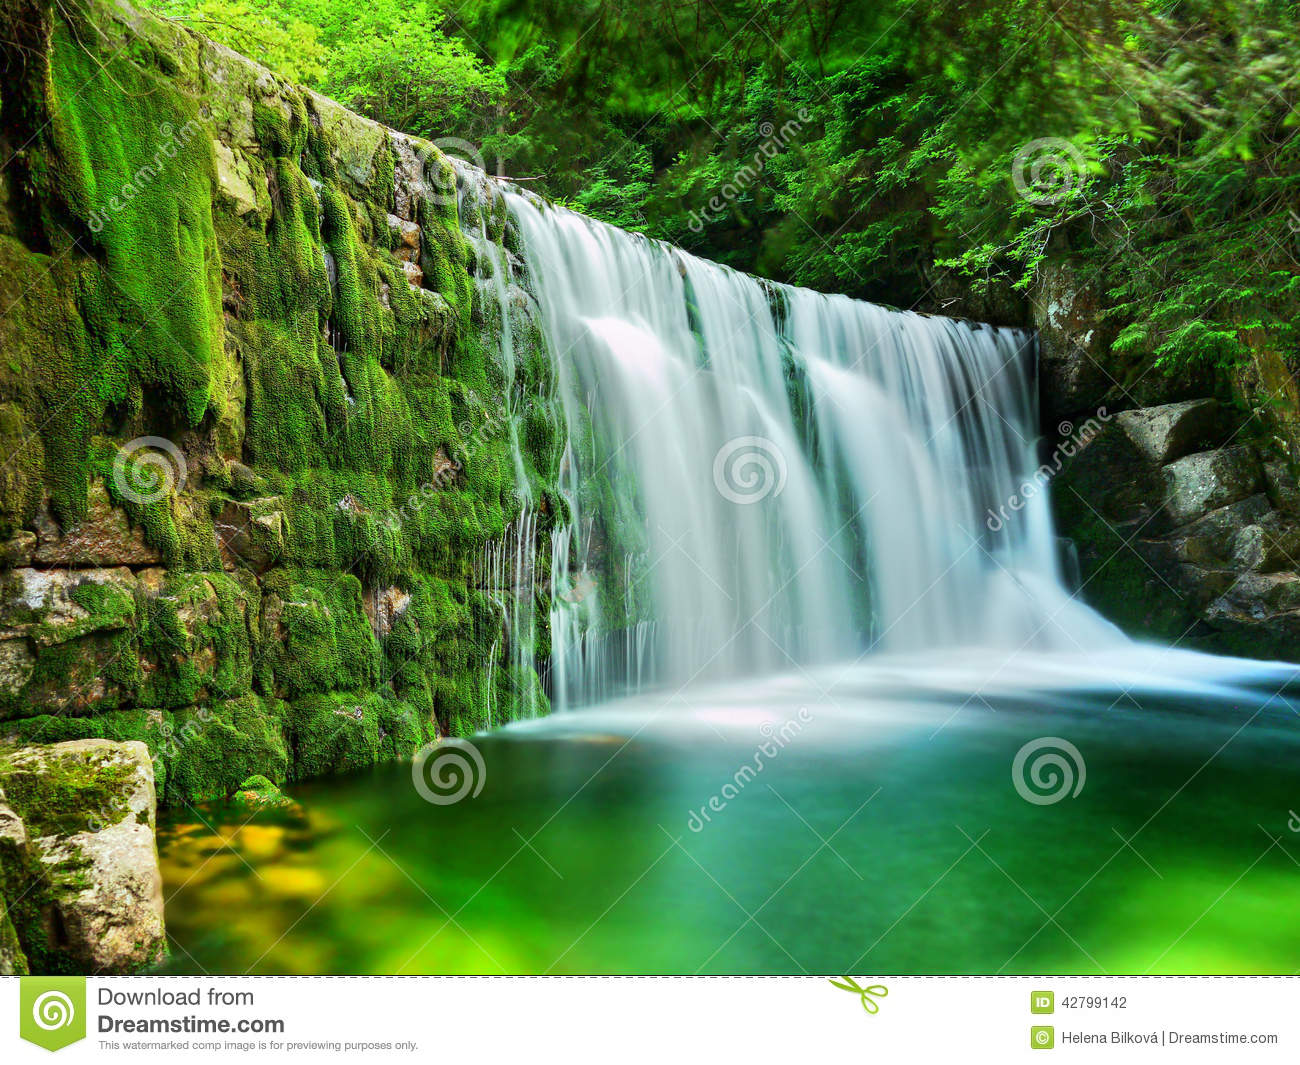 Free Desktop Wallpaper Fall Scenes Lac Emerald Waterfalls Forest Landscape Photo Stock